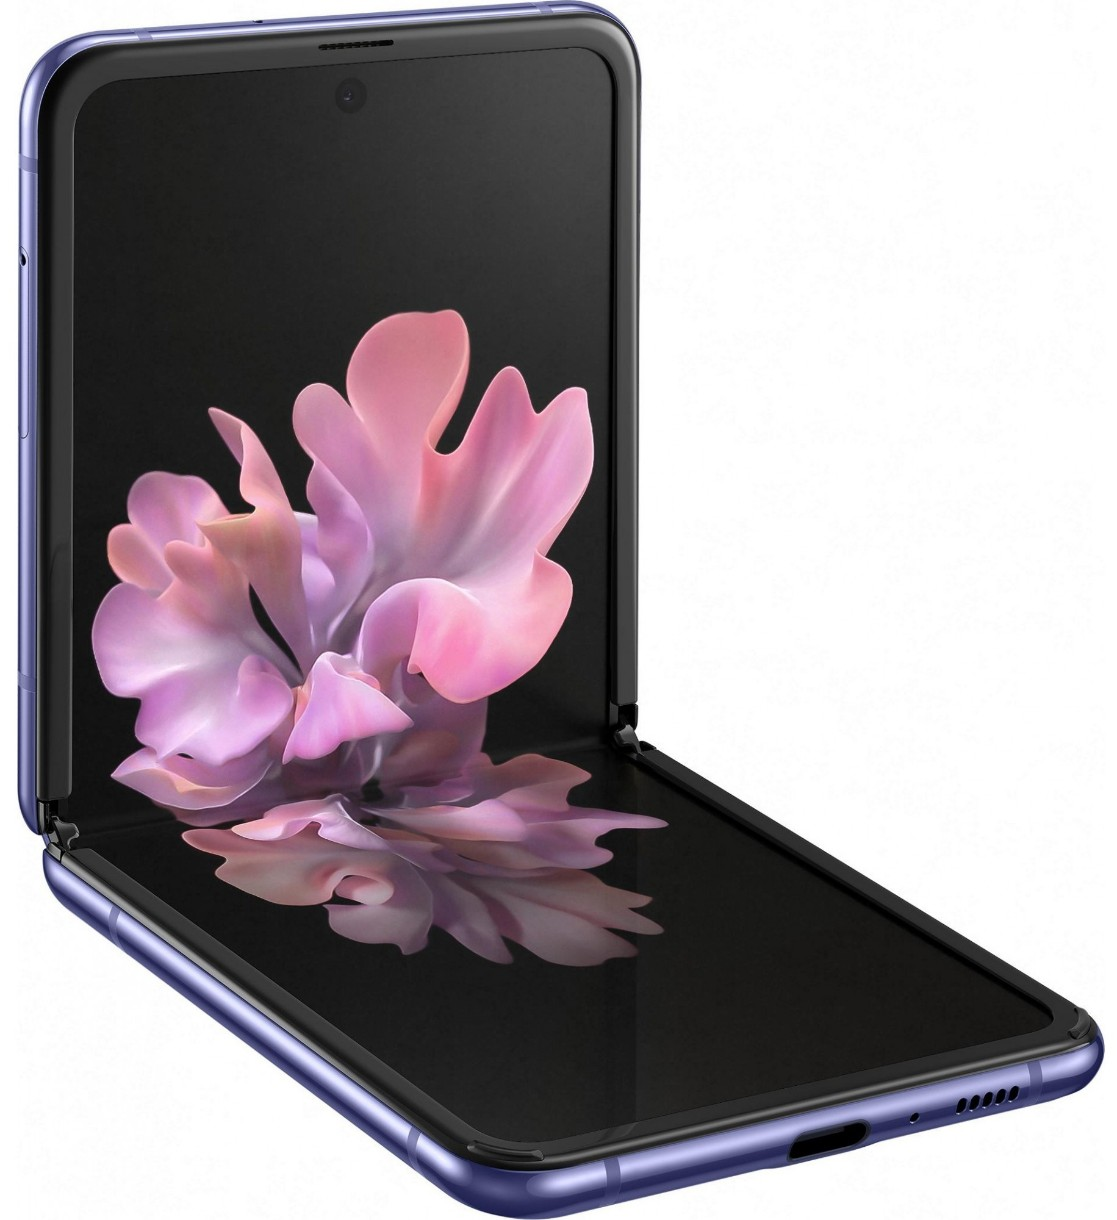 Мобильный телефон Samsung SM-F700 Galaxy Z Flip 8Gb/256Gb Mirror Purple